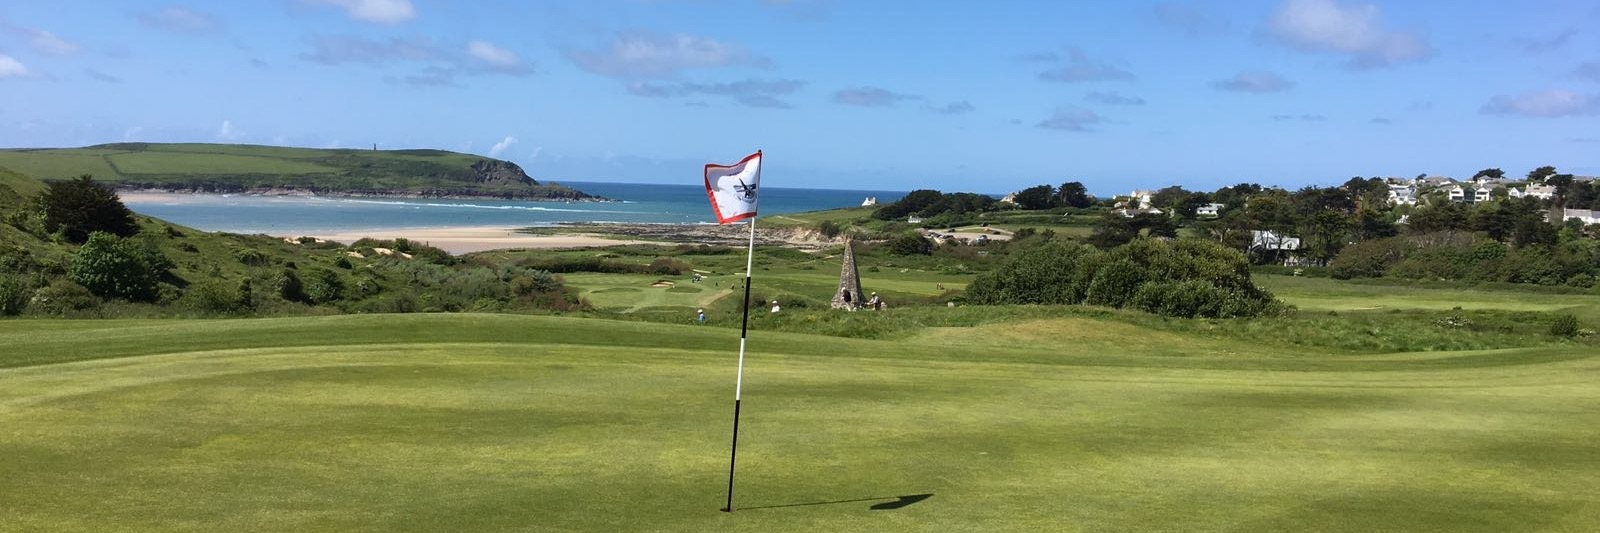 Golf in cornwall by authentic golf